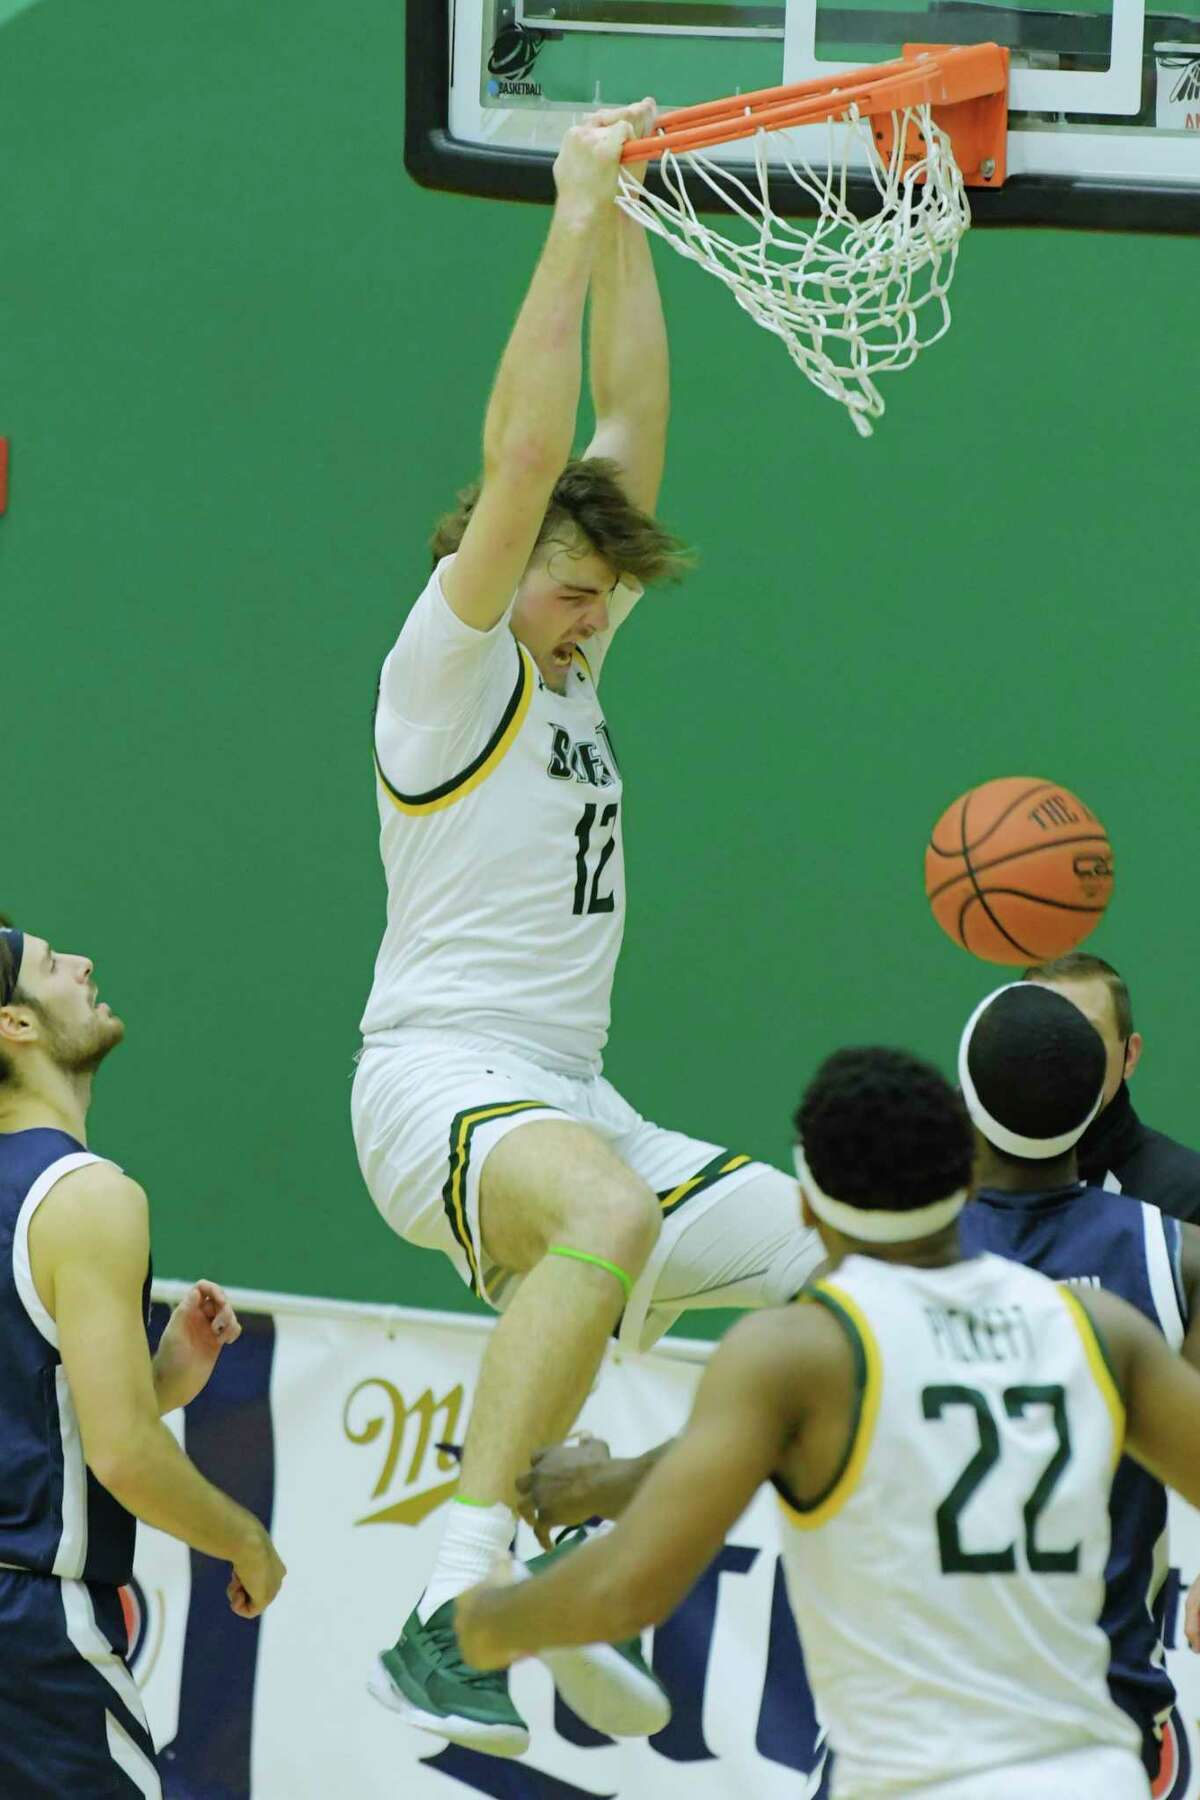 Kyle Young of Siena dunks the ball during their game against Monmouth at the Alumni Recreation Center on the campus of Siena College, on Sunday, Jan. 3, 2021, in Loudonville, N.Y. (Paul Buckowski/Times Union)